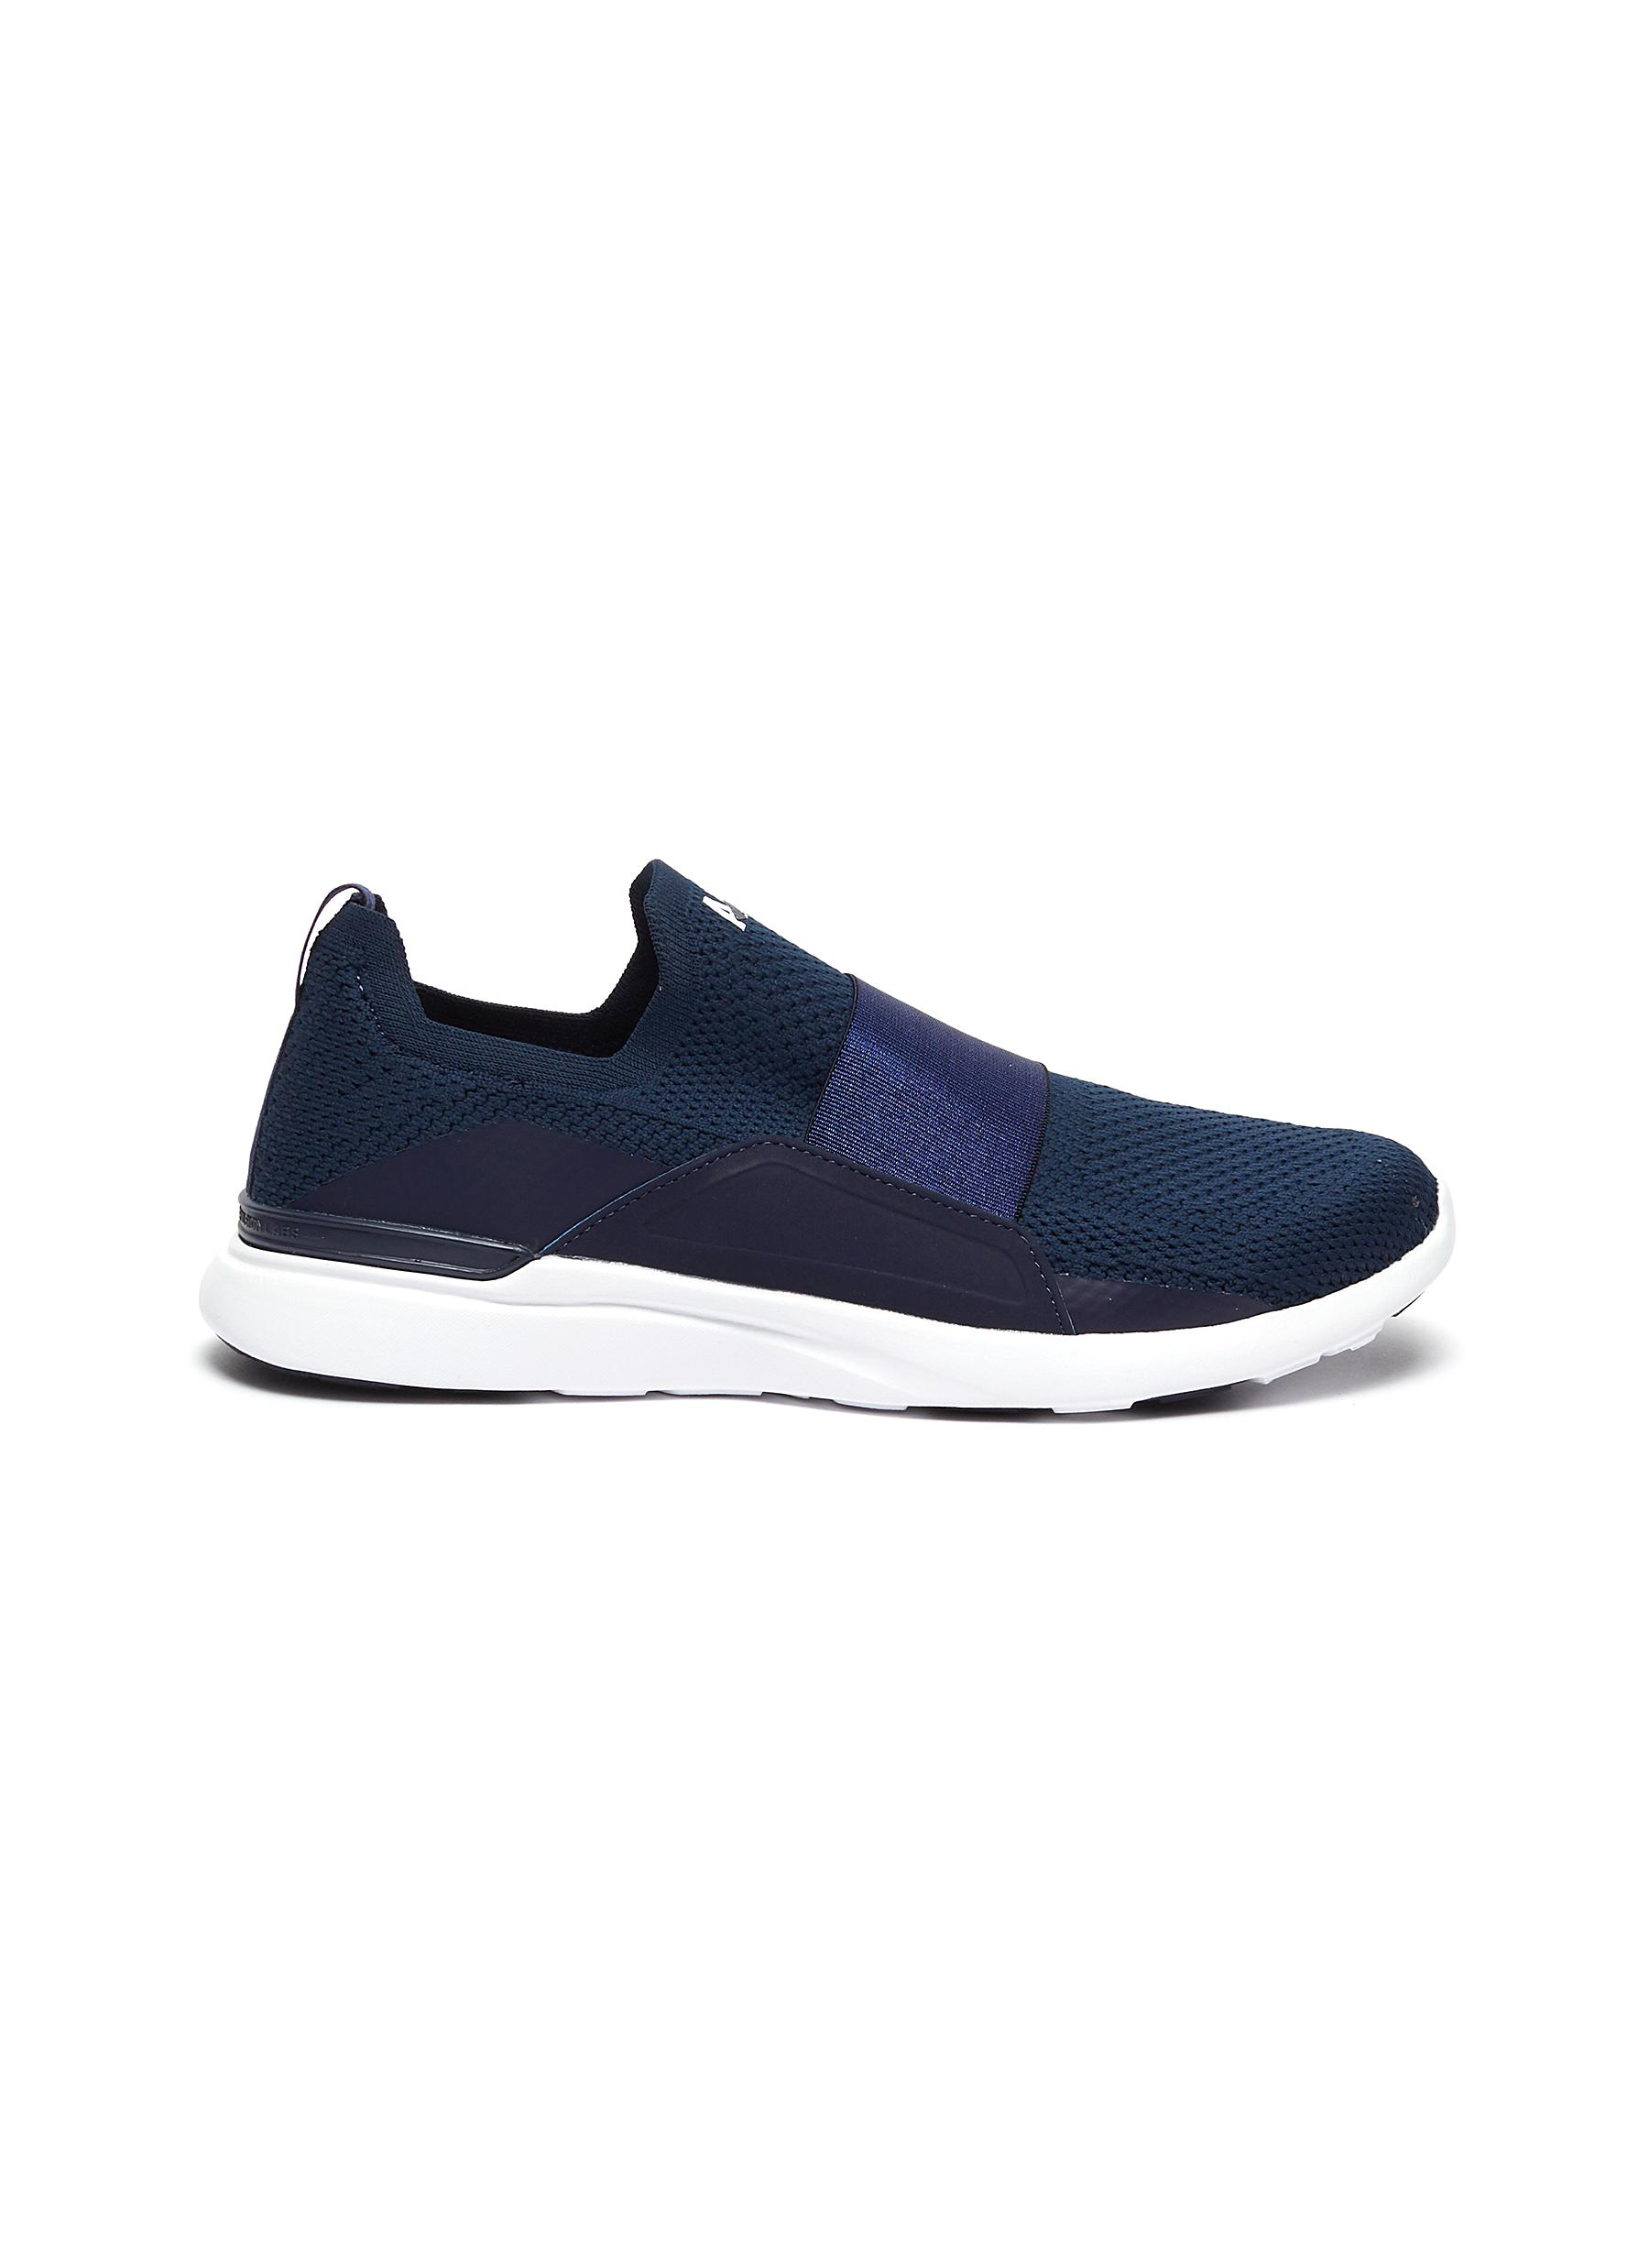 Techloom Bliss knit slip-on sneakers by Athletic Propulsion Labs